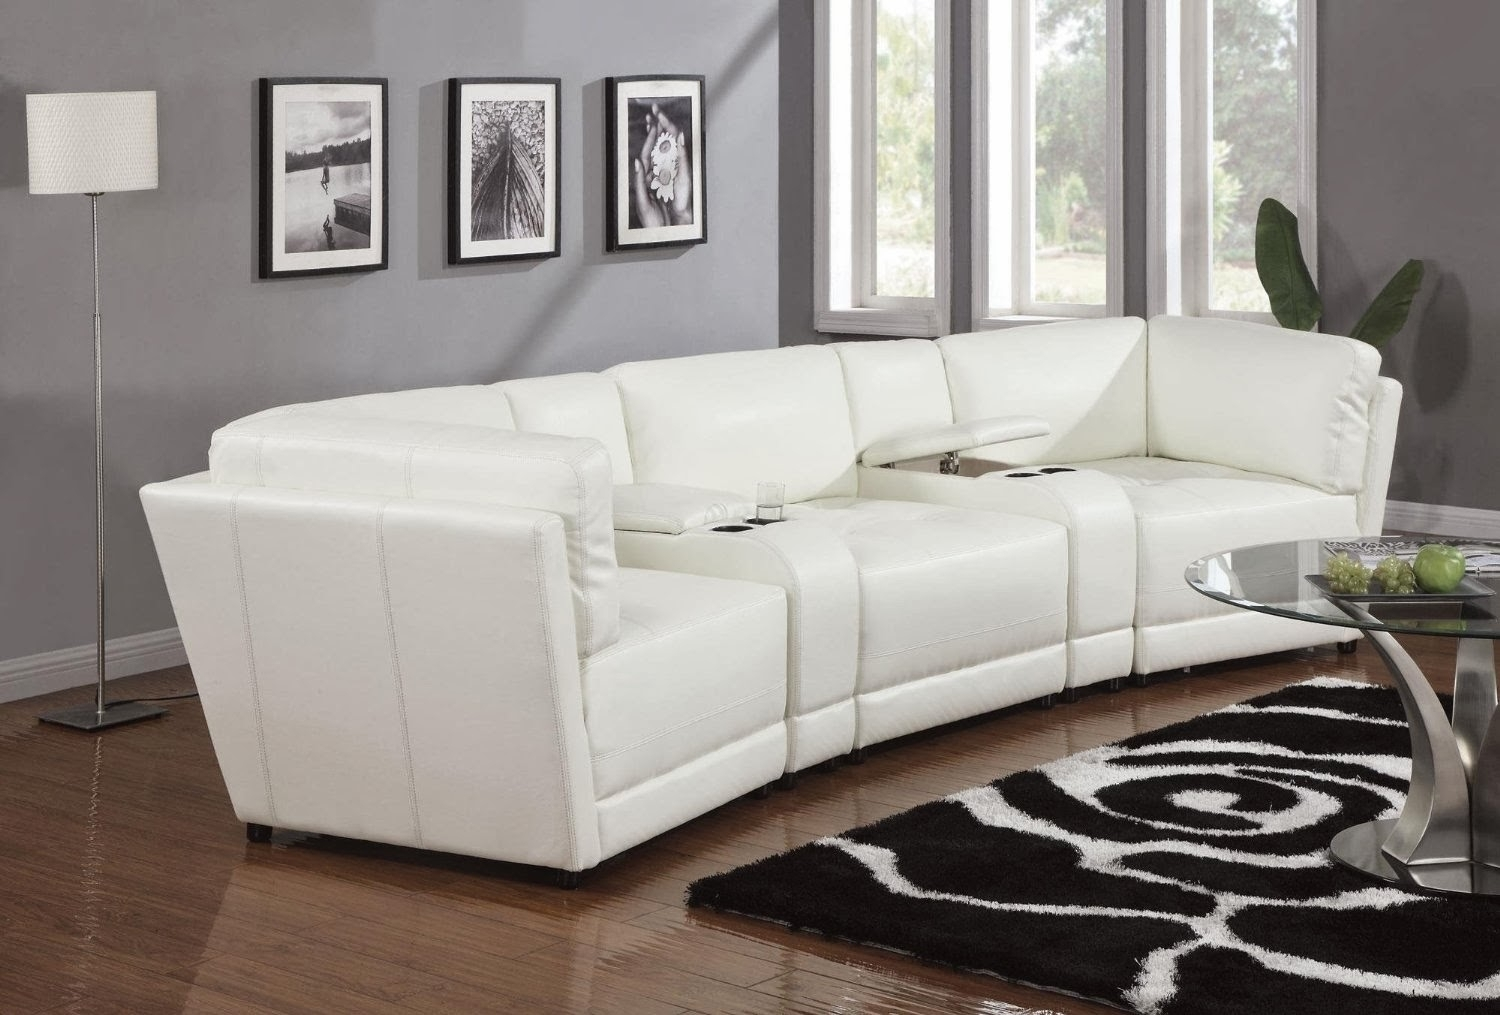 Best Petite Sectional Sofa 82 For Sectional Sofas Vancouver Bc With With Regard To Vancouver Bc Sectional Sofas (View 2 of 10)